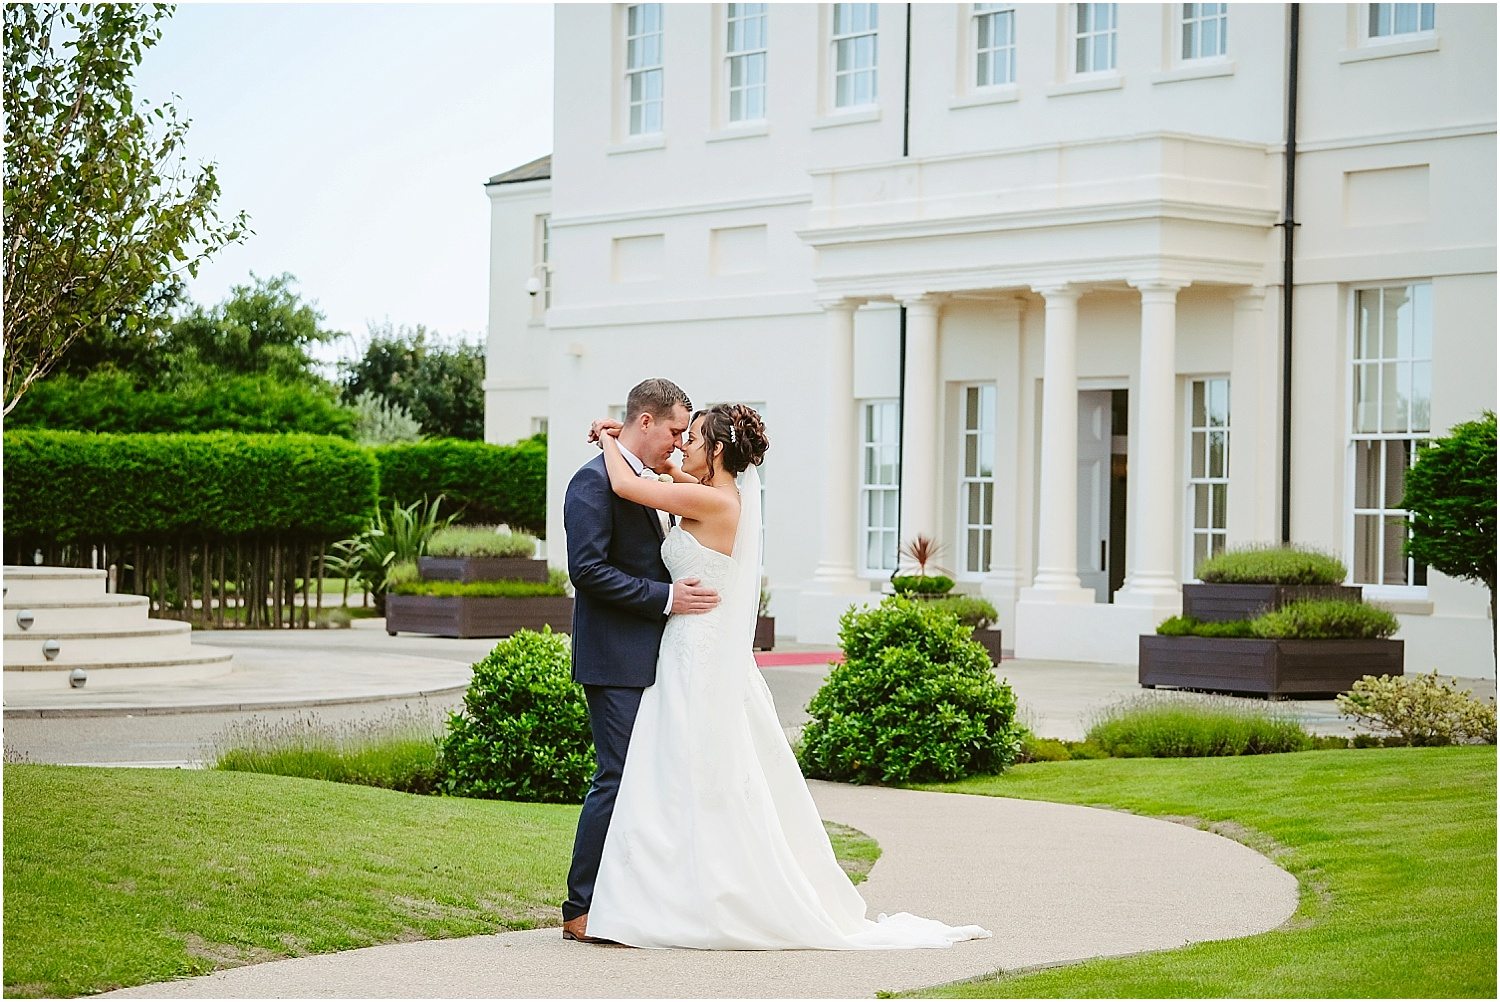 Wedding at Seaham Hall - wedding photography by www.2tonephotography.co.uk 060.jpg